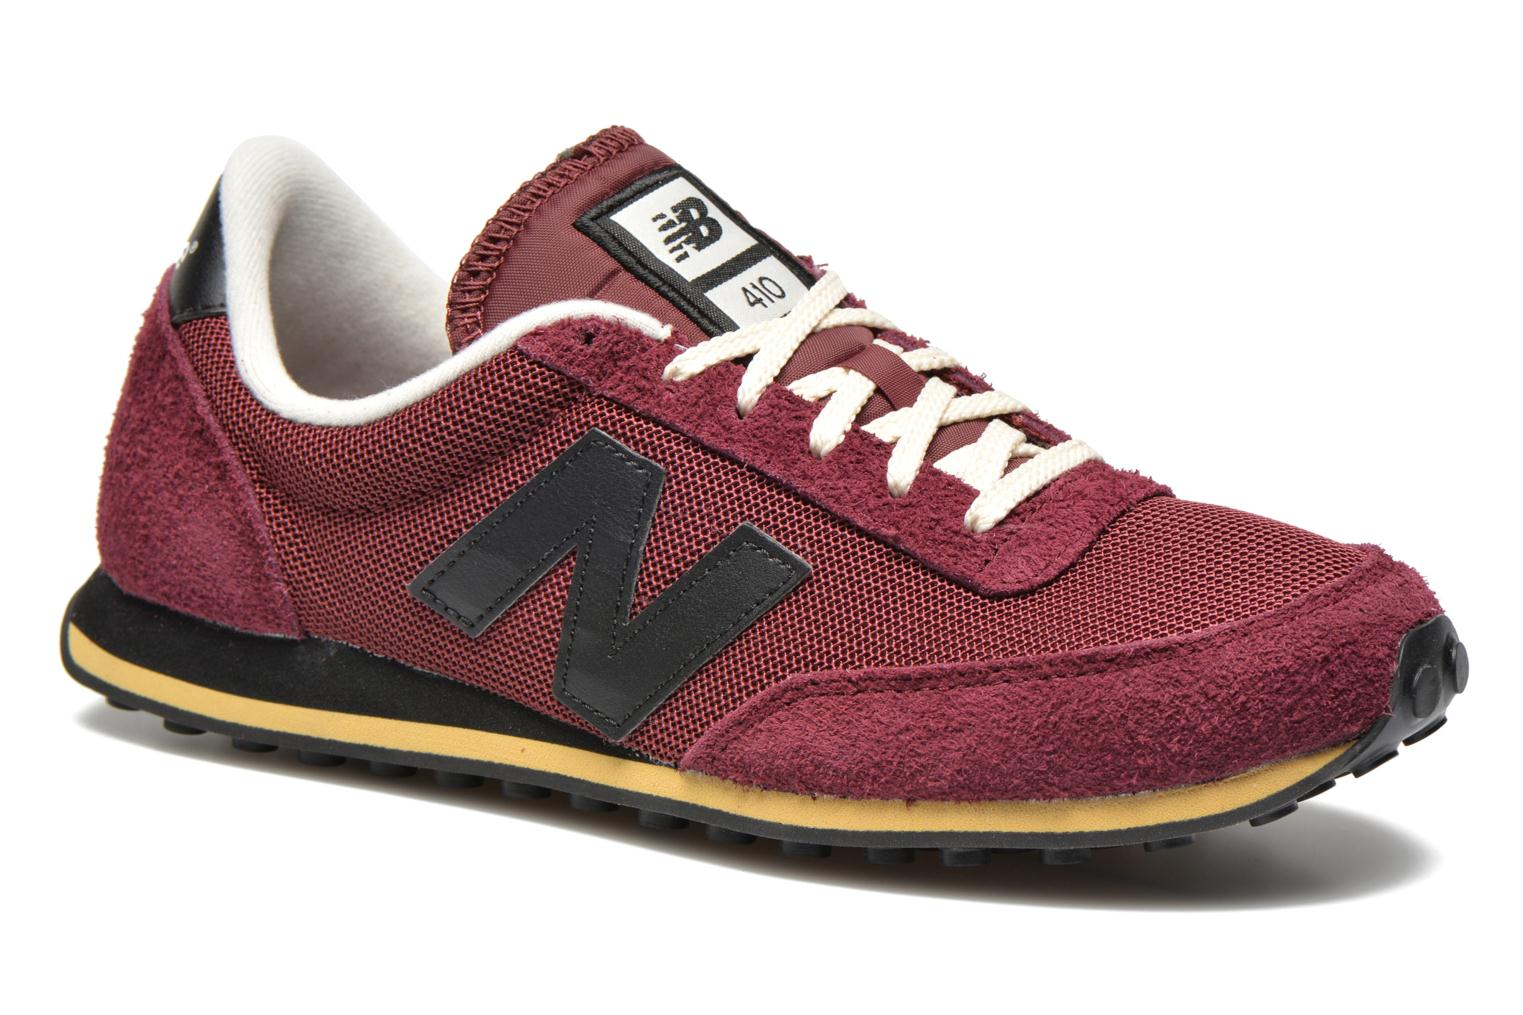 new balance dames u410 bordeaux